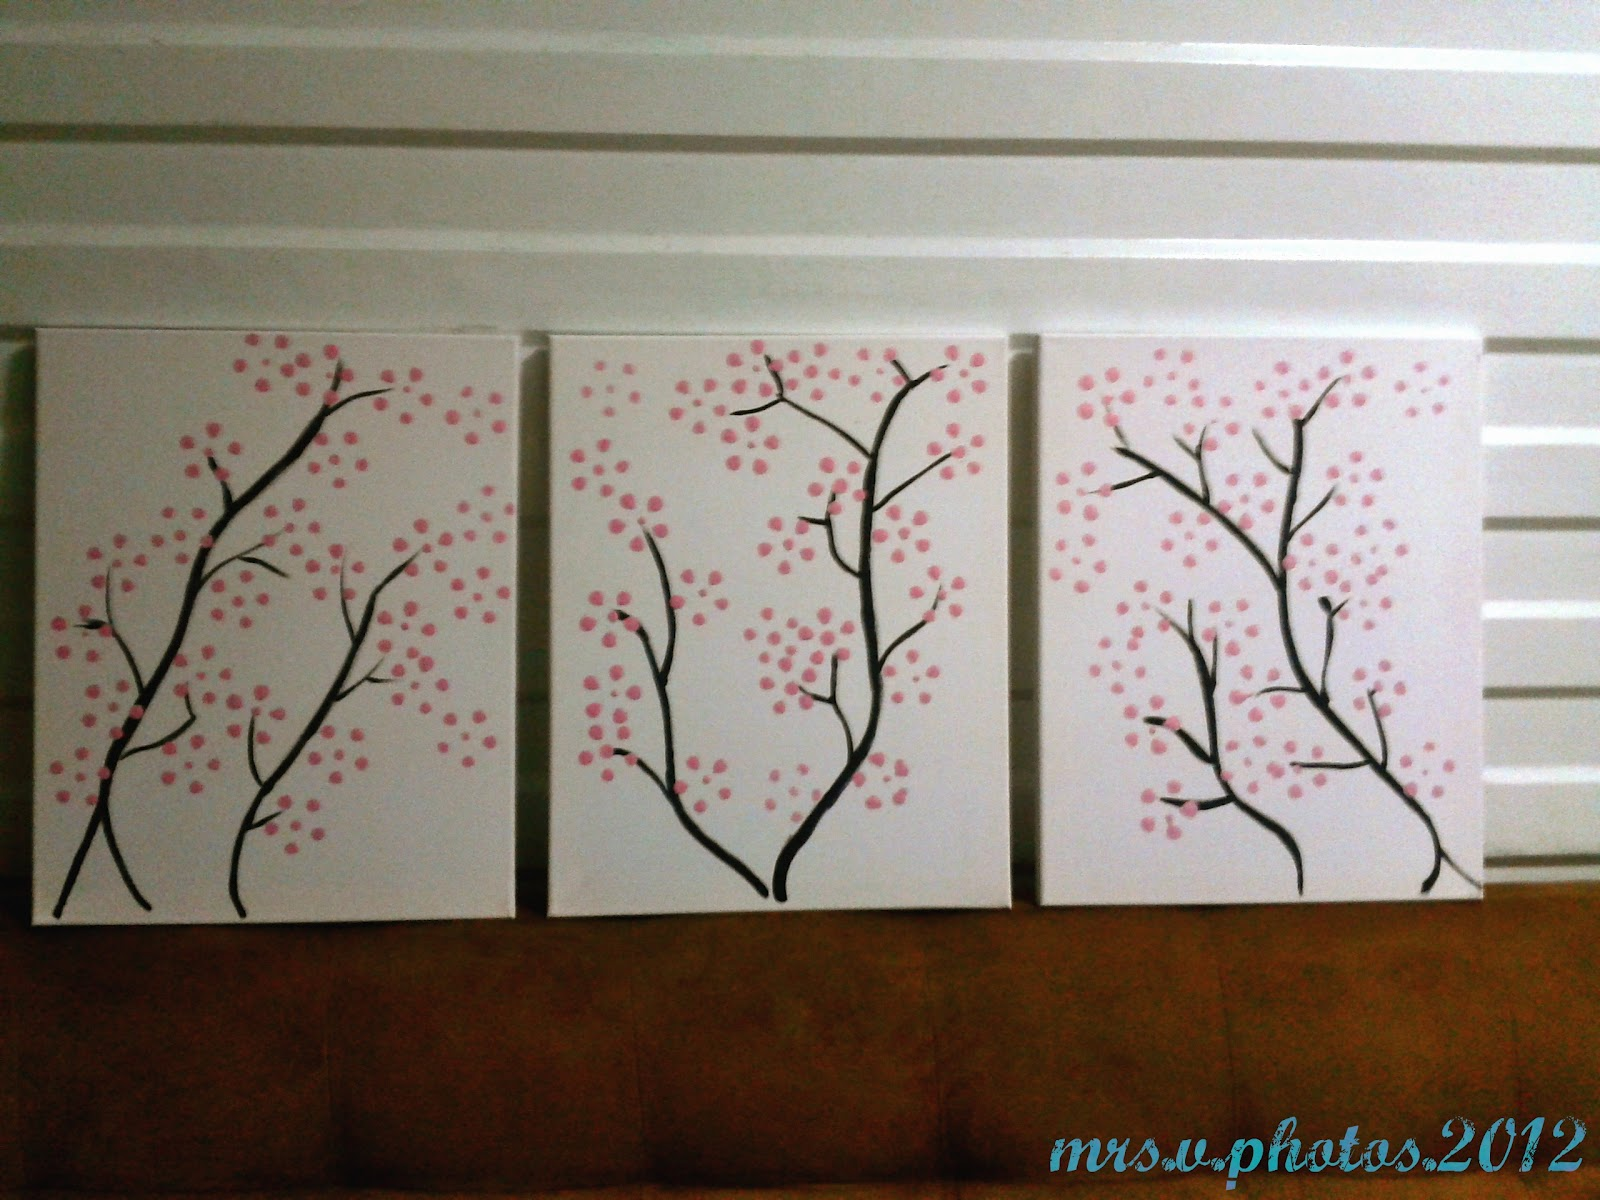 mr and mrs v issues solved cherry blossoms diy painting